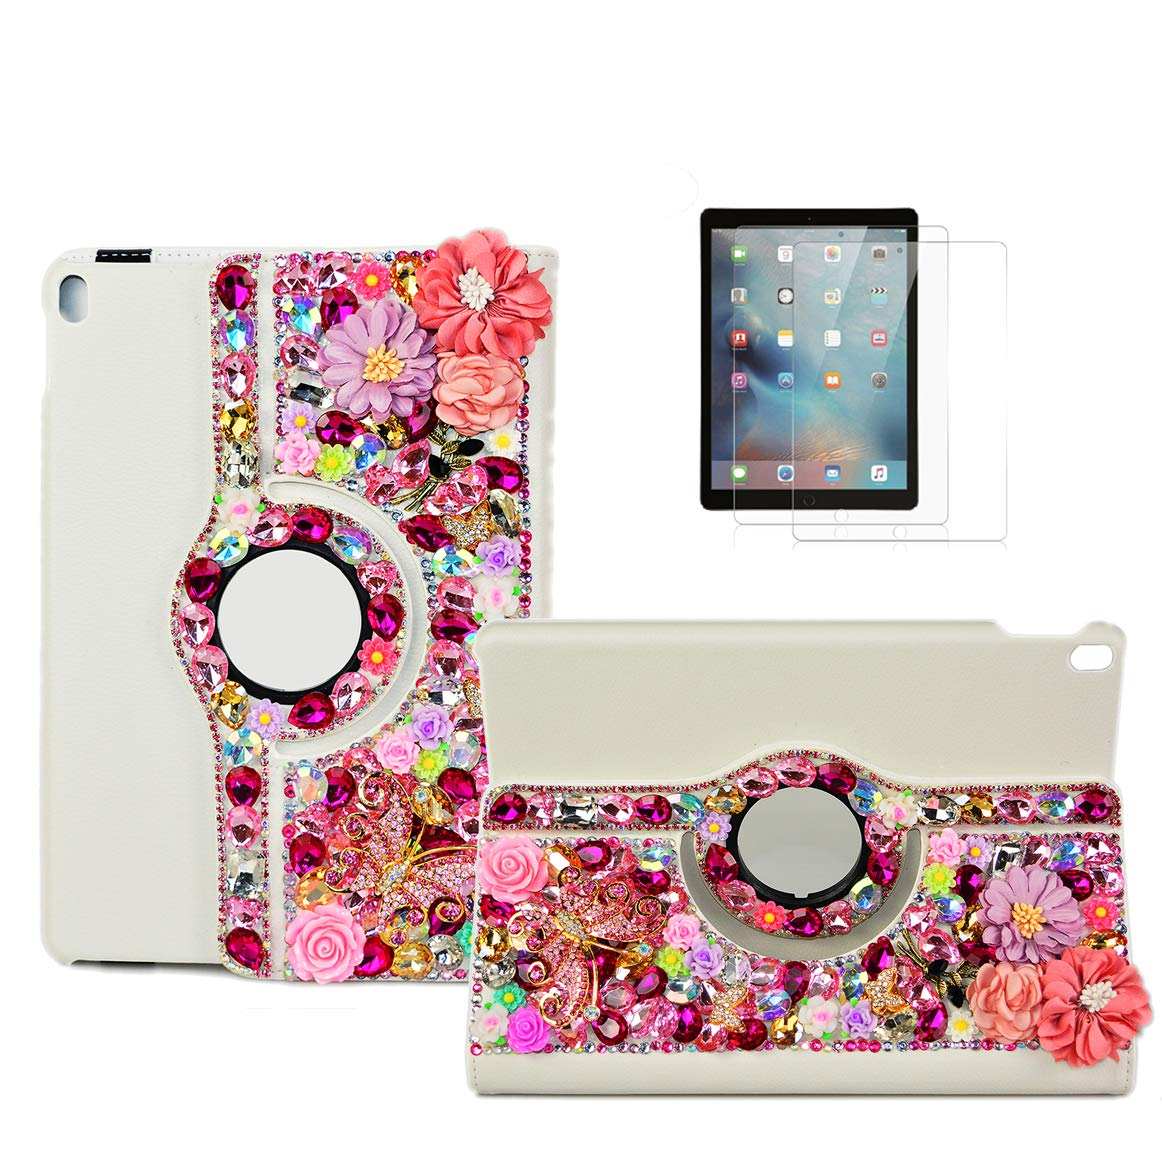 STENES Bling Case Compatible with iPad 10.2 inch 7th Gen 2019 - STYLISH - 3D Handmade Pretty Flowers Butterfly Floral 360 Degree Rotating Stand Case with Smart Cover Auto Sleep/Wake Feature - Red